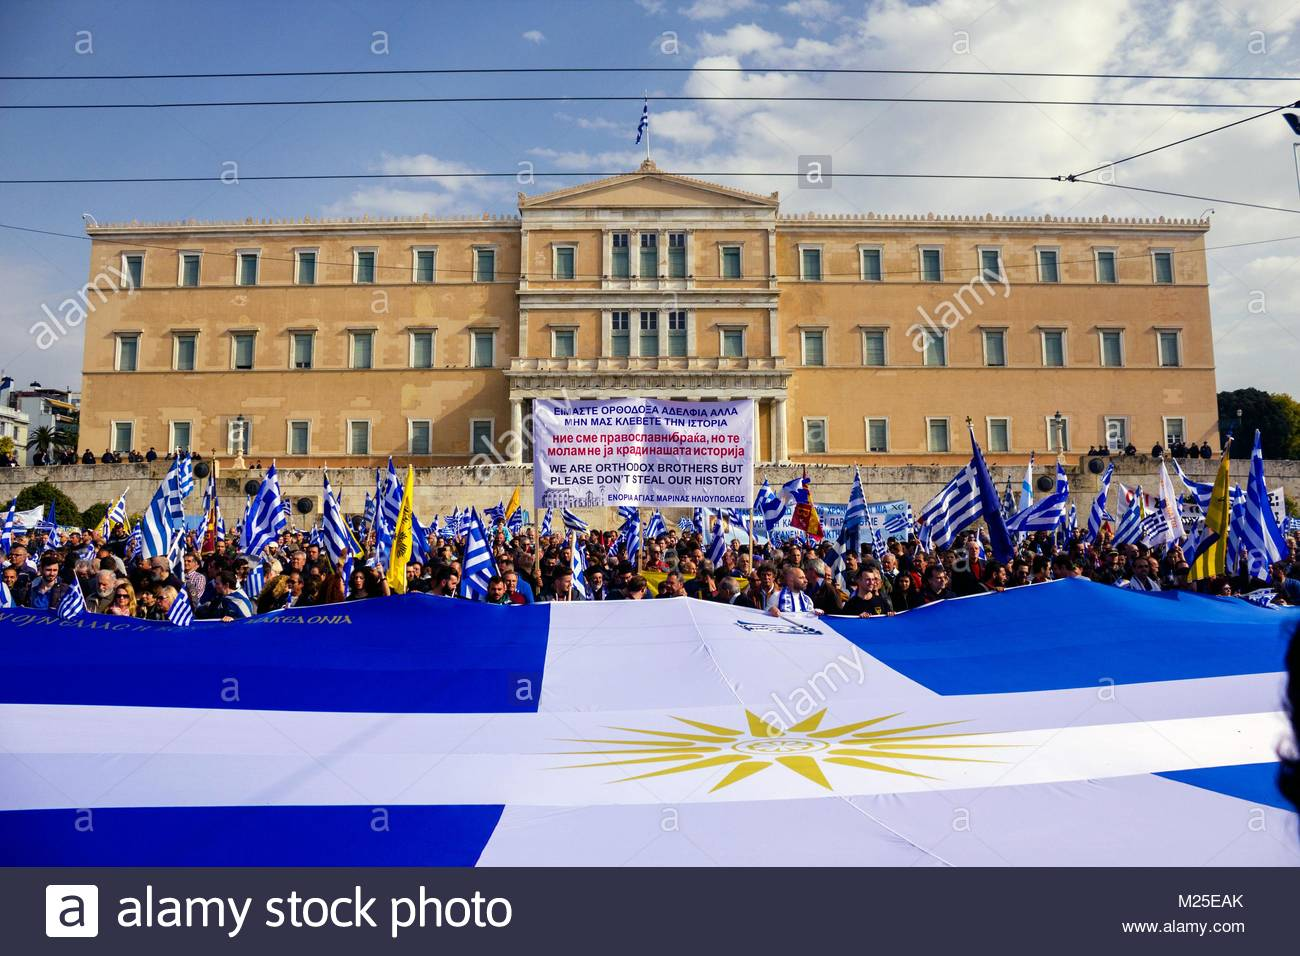 Athens greece 4th february 2018 people holding a gigantic flag people holding a gigantic flag with the sun of vergina an ancient greek symbol on it athens greece february 4 2018 hundreds of thousands of people buycottarizona